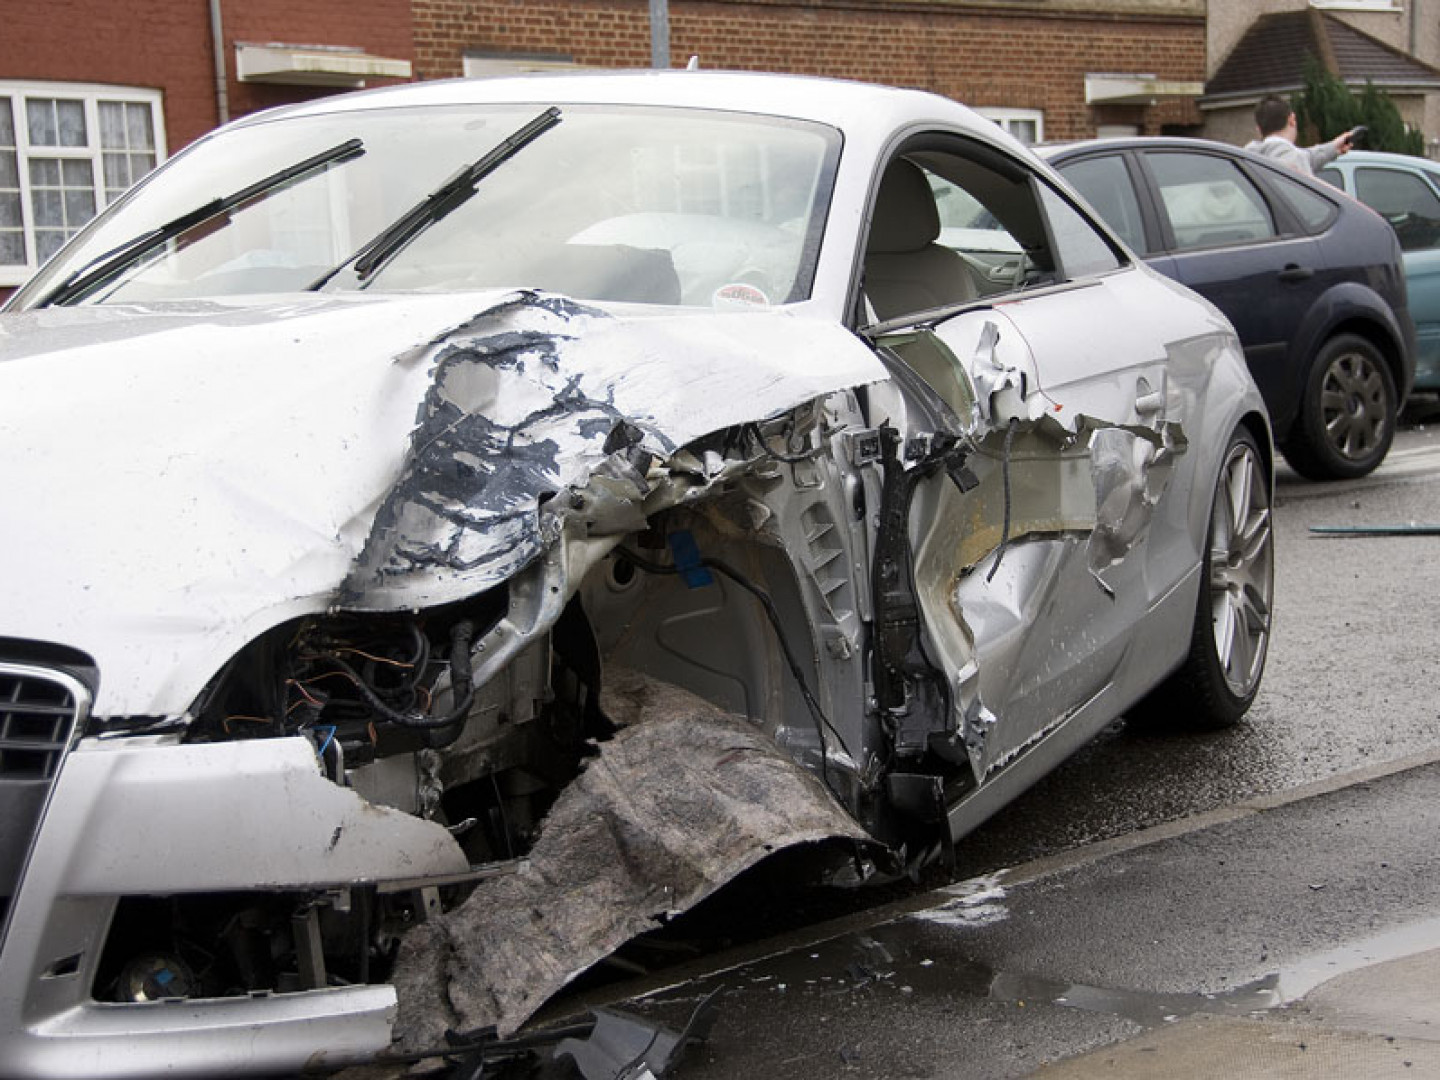 Car accident attorney in SOUTH BRONX, NY AREA